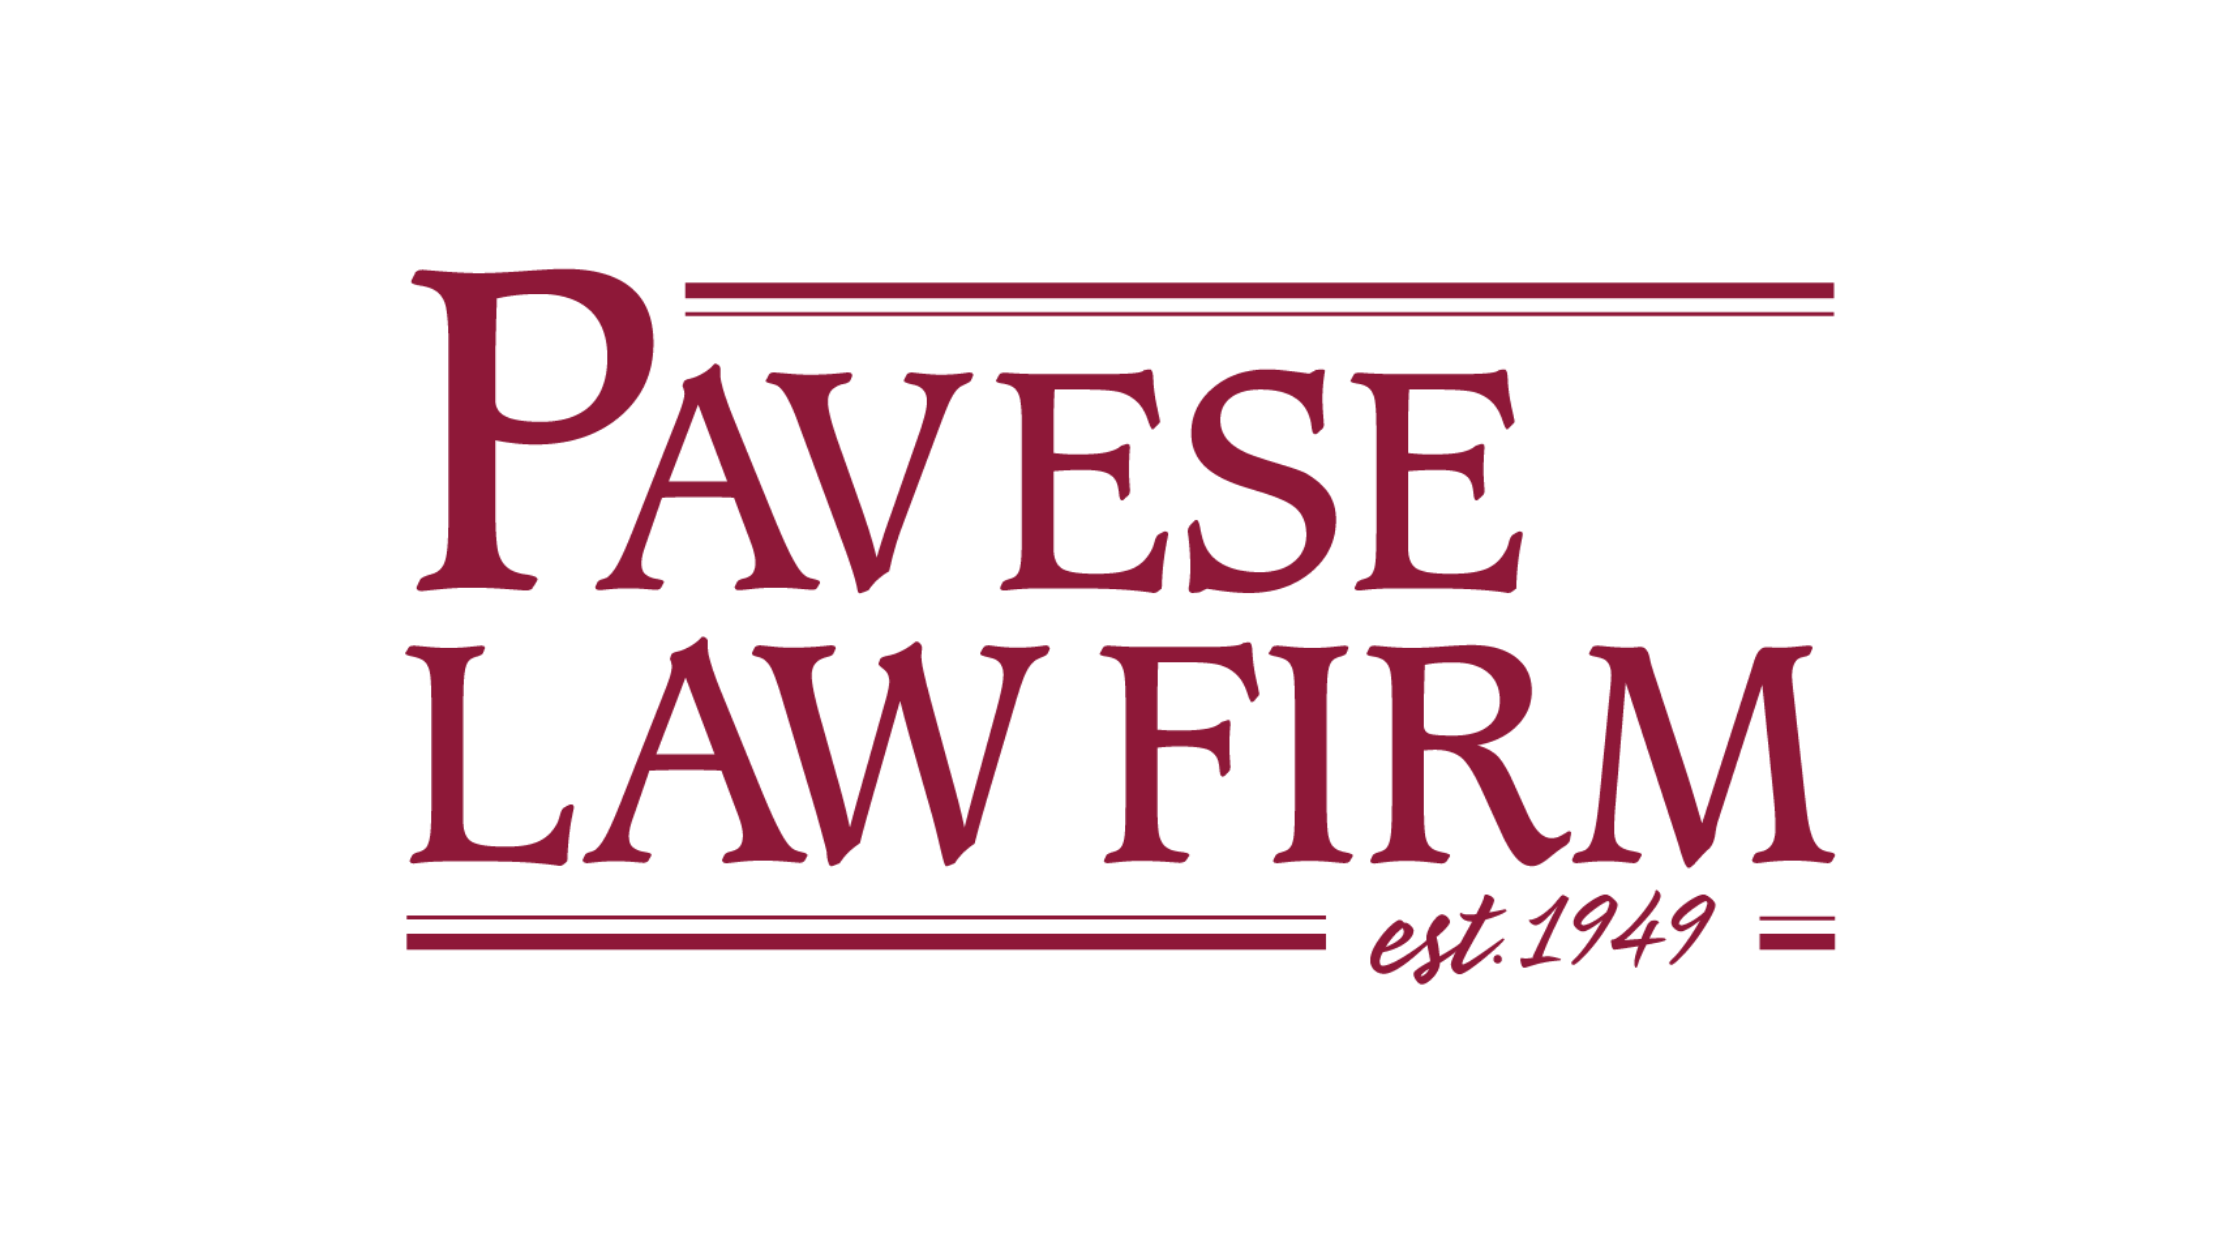 Pavese Law Firm adds Capps and Thompson as Managing Partners